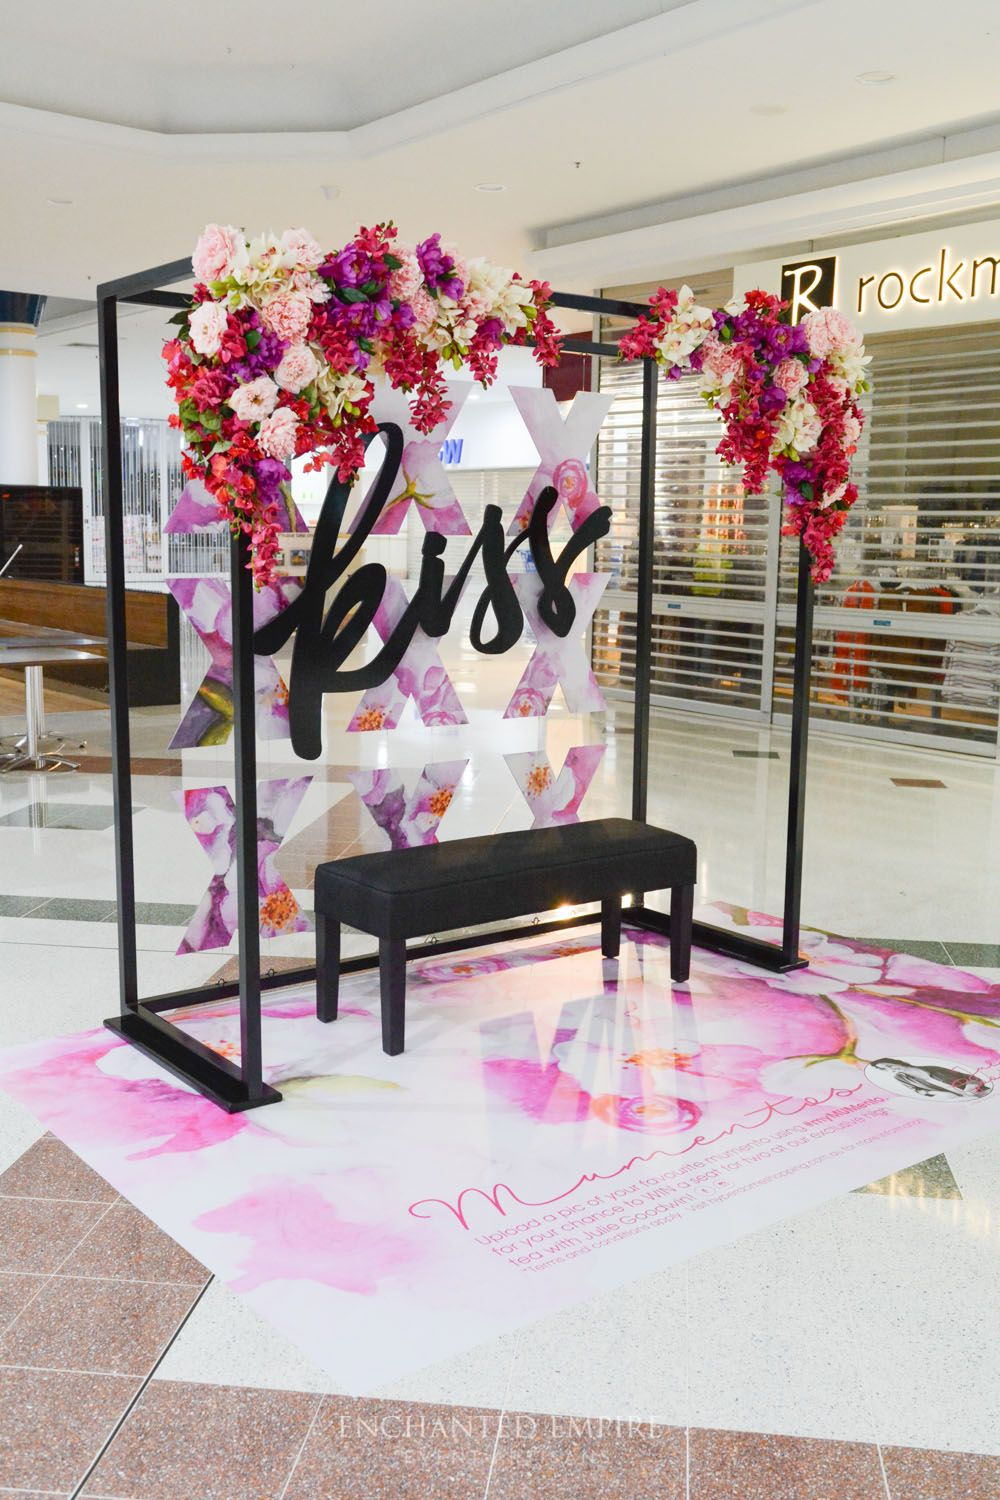 This Visual Merchandising install was created as a social media campaign for Mother's Day, for one of our large retail clients. With an emphasis on hand illustrated, watercolour florals, all painted in-house with our graphics team, these were transferred onto floor stickers and custom shaped backdrops. Visual merchandising. Promotional product launch. See full video on our YouTube channel: https://youtu.be/OVpjeORh83Q